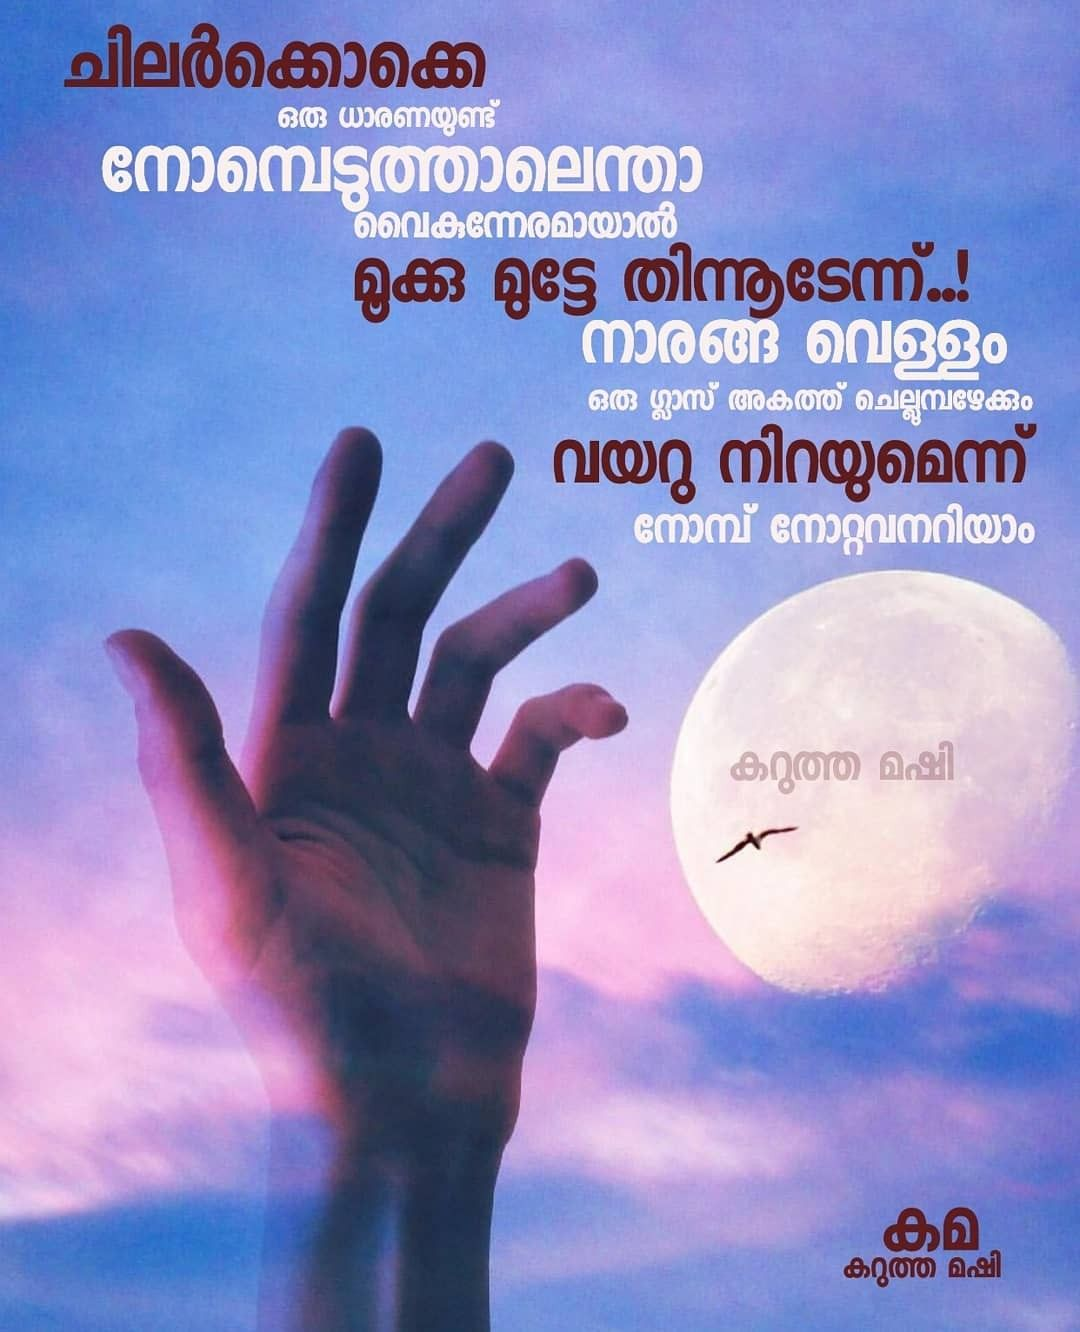 Pin by Sajan on മലയാളം Malayalam quotes, Well said, Quotes